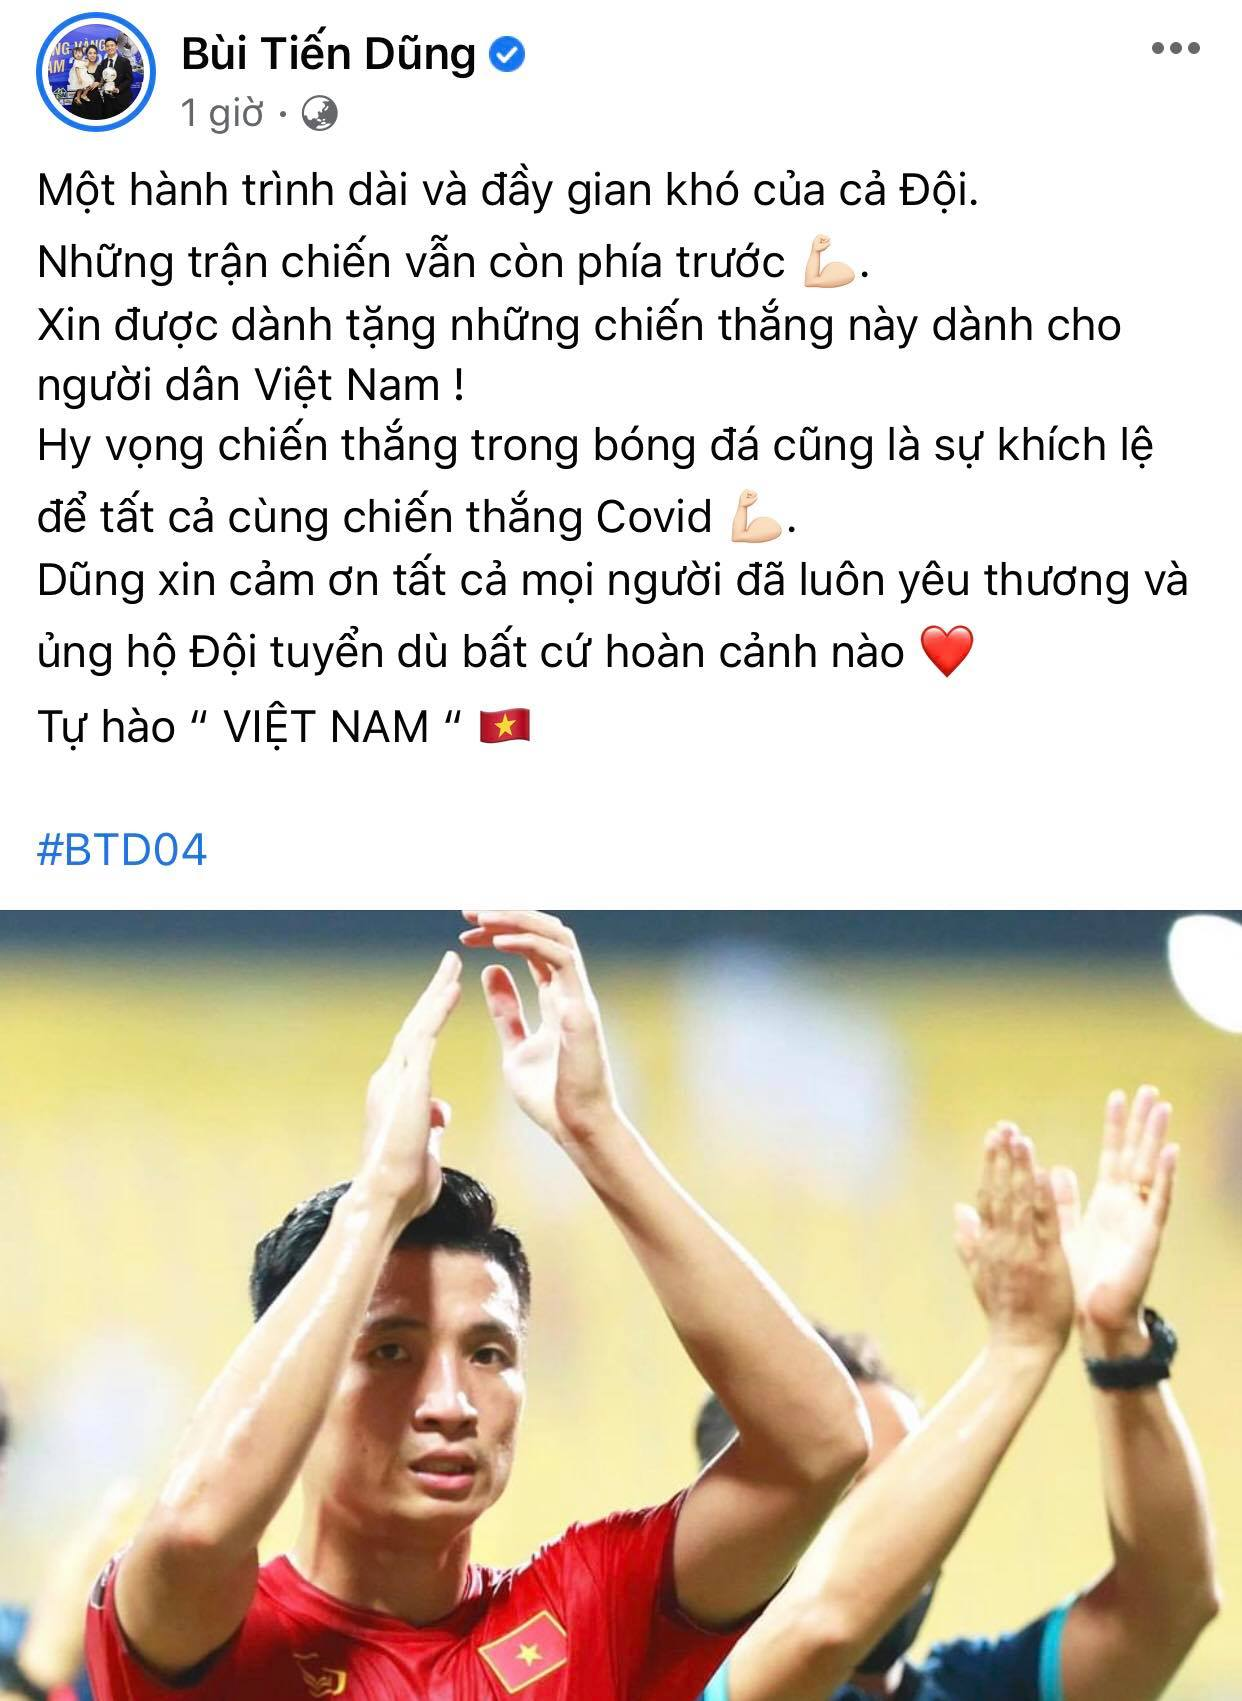 Bui Tien Dung thanked the fans for always loving the Vietnamese team in any circumstances.